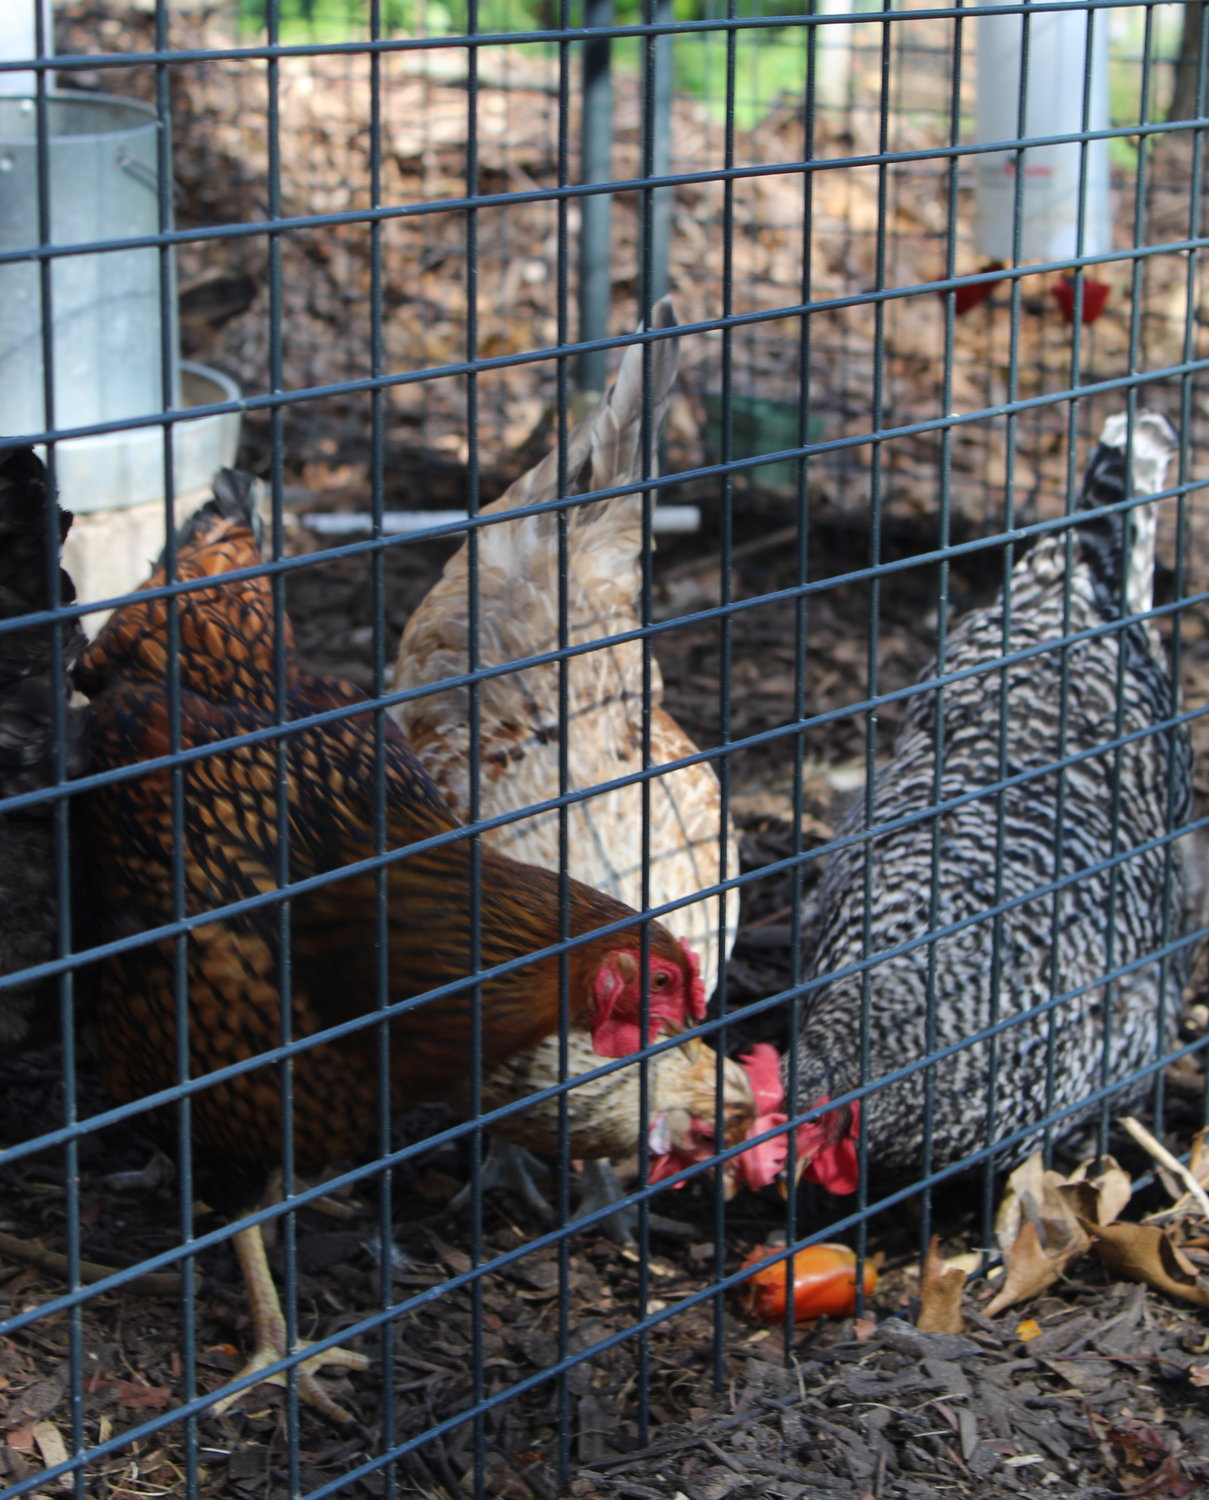 The chickens feasted on freshly-harvested tomatoes picked from the garden just minutes before.